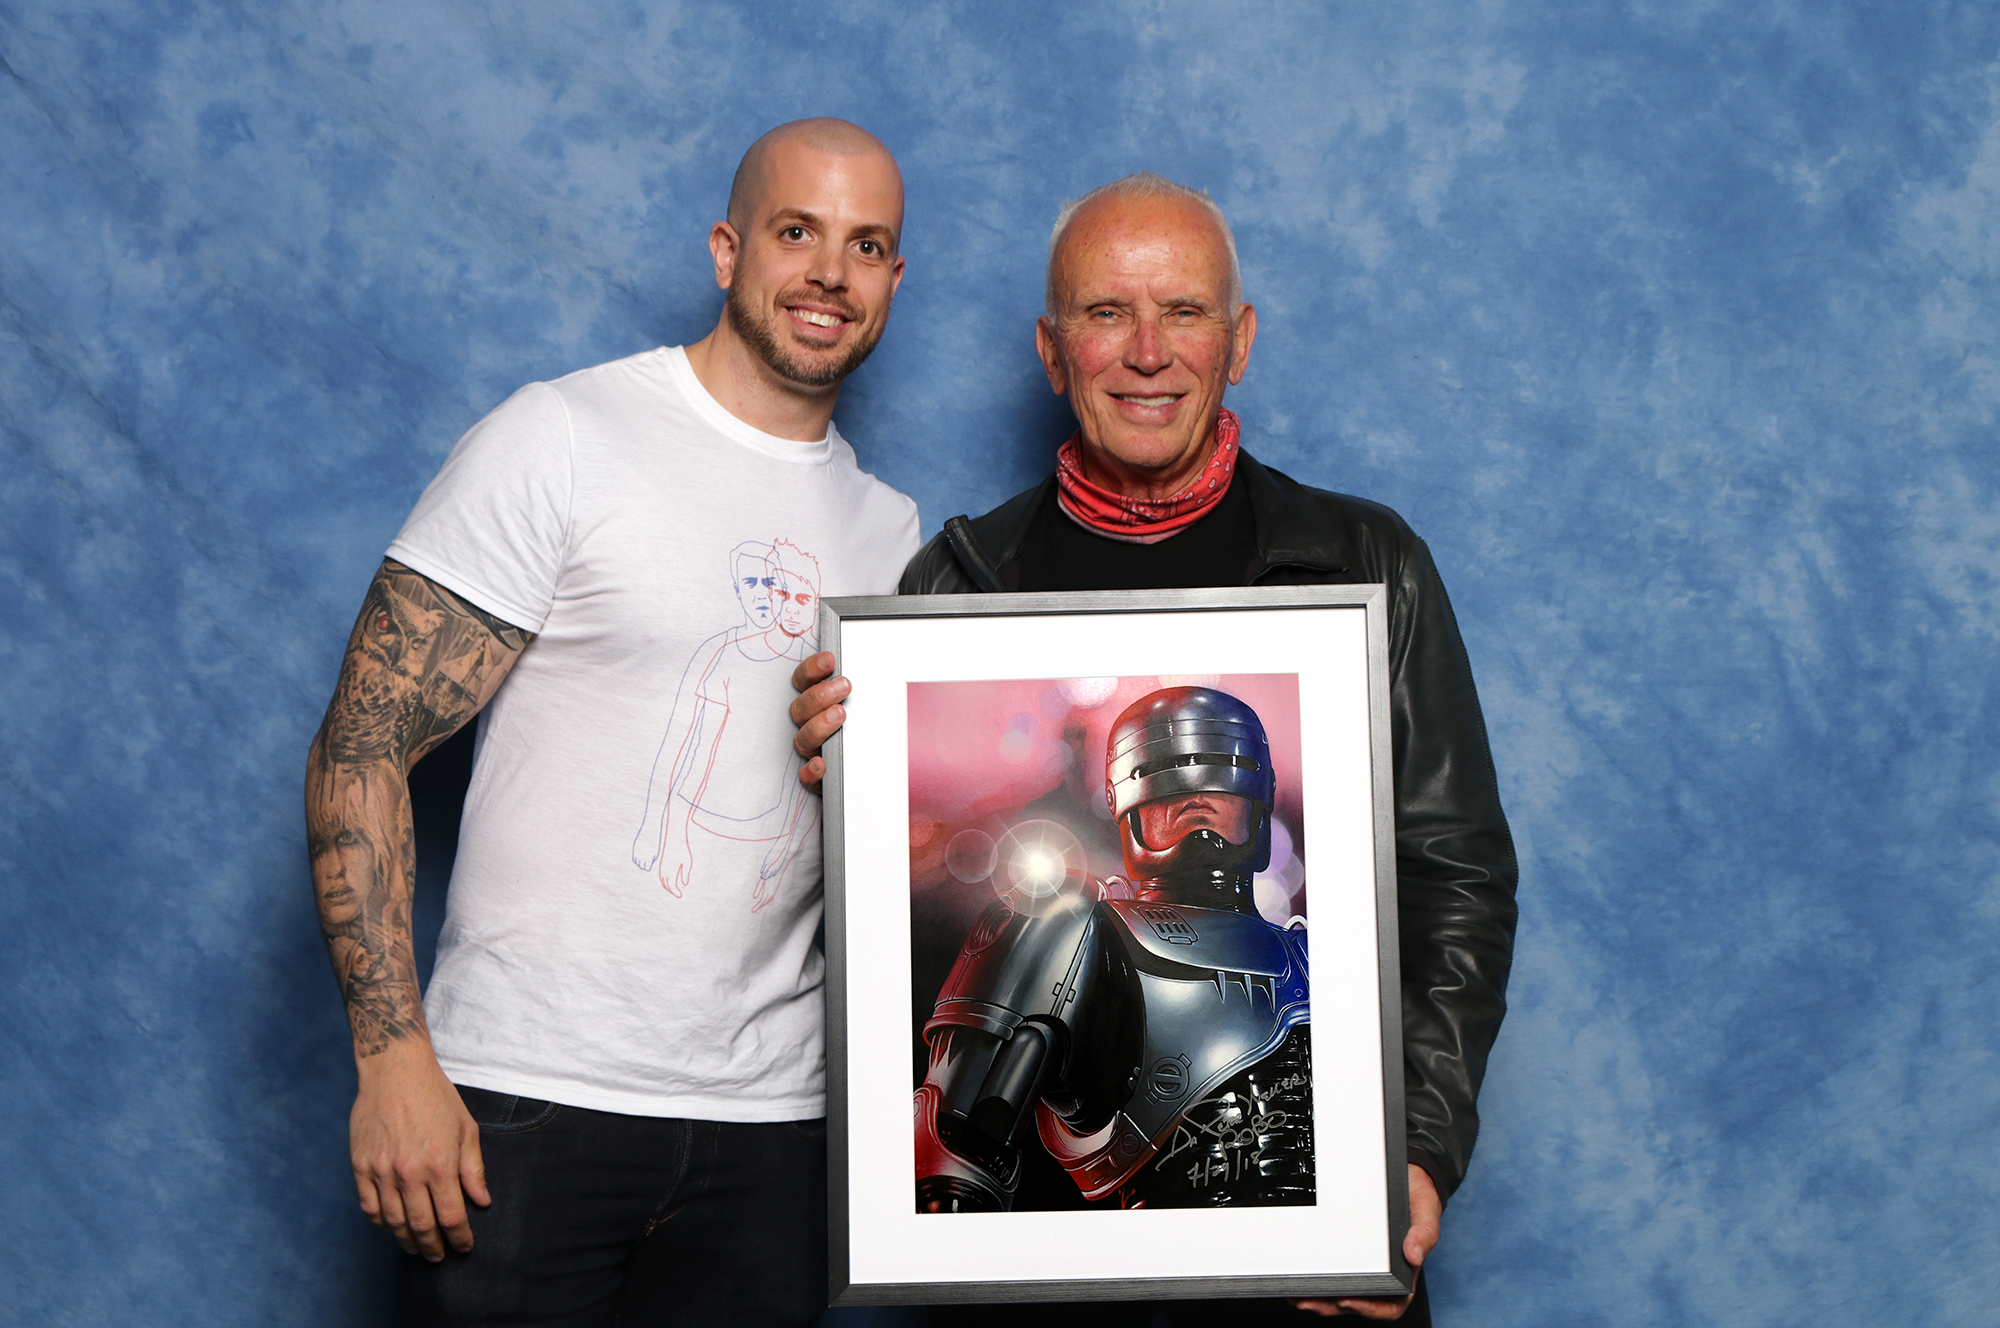 Painted portrait done for auction. Signed by Peter Weller (aka Robocop). Medium: Acrylic paints on art board. By Craig Mackay.